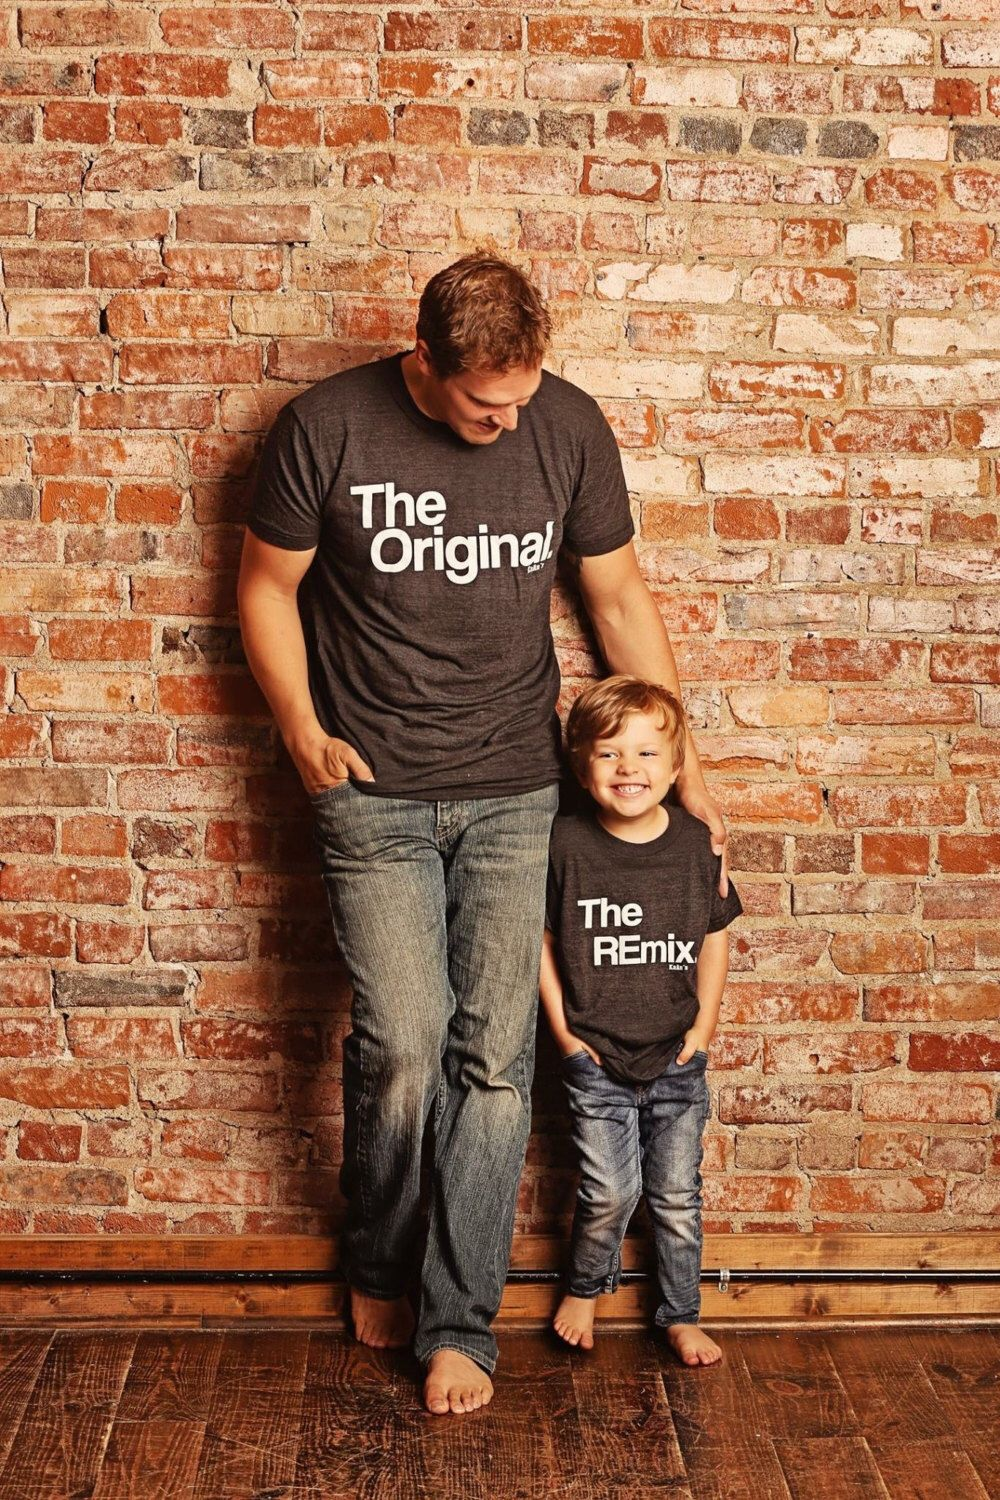 54ca64ee Absolutely adorable father and son matching shirts. Definitely need one for  the dad and son in your life!